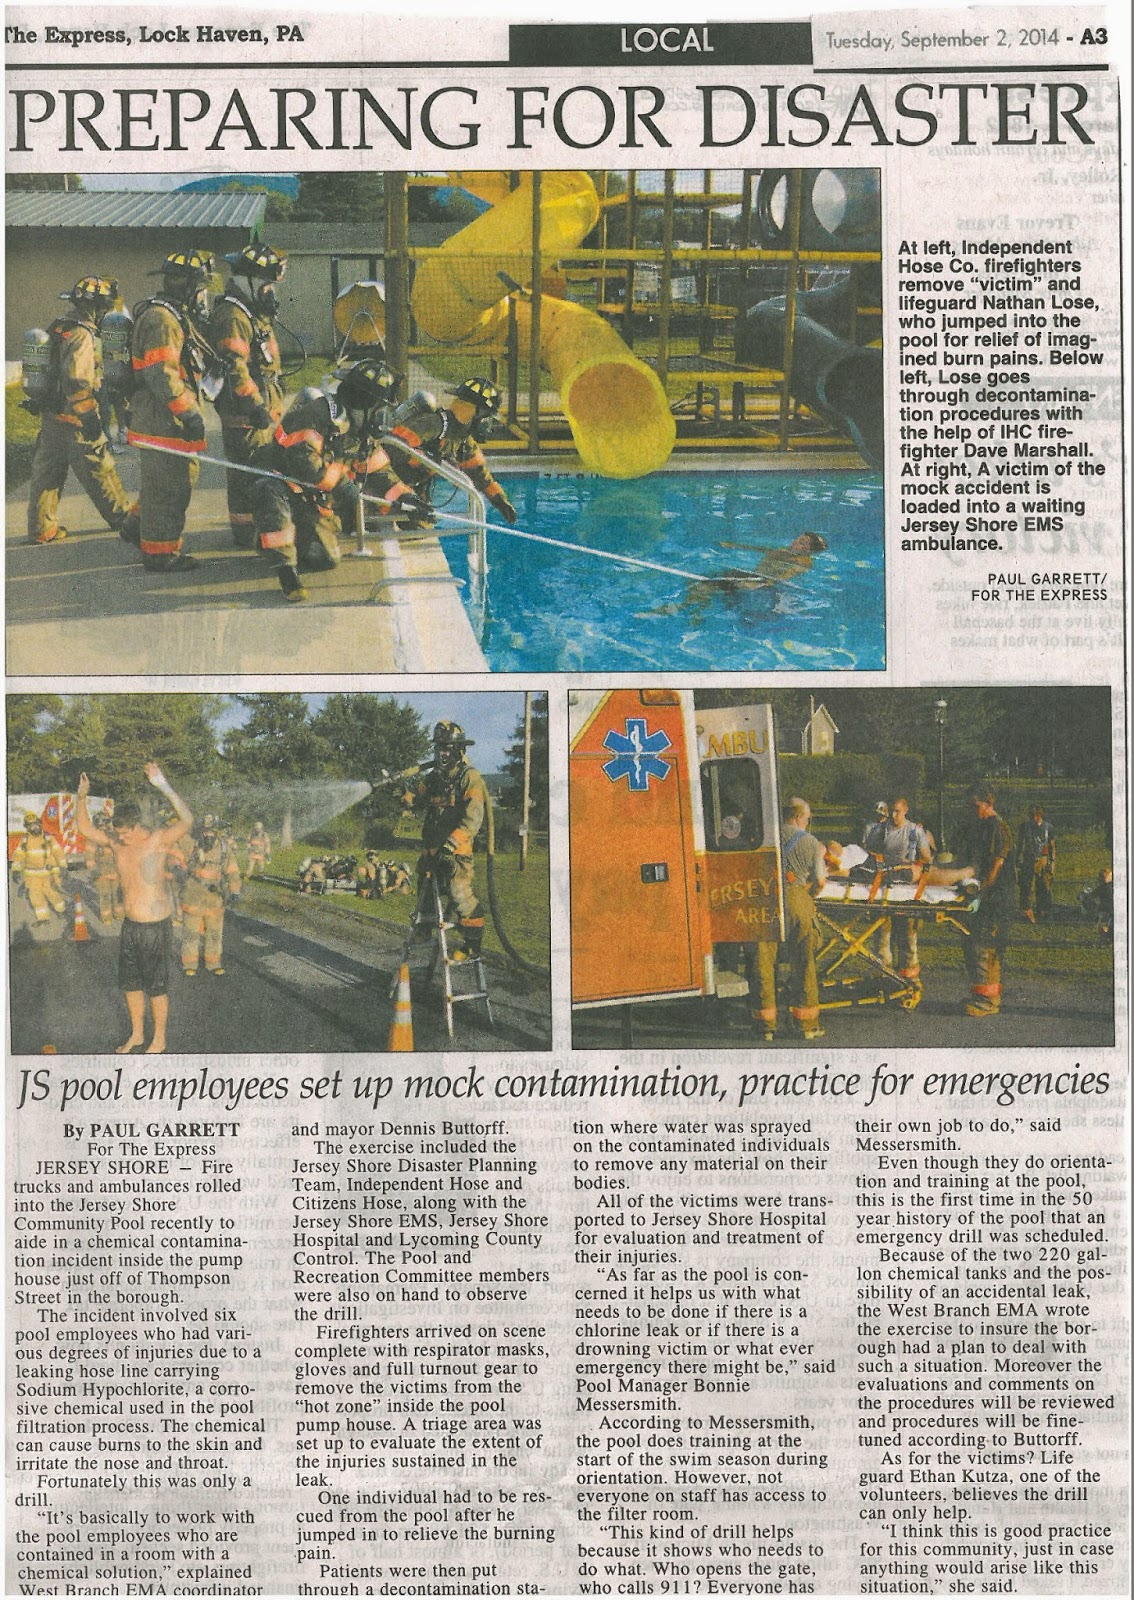 Jersey Shore Pa Swim Jersey Shore Pool Used For Disaster Training News, obituaries, letters to the editor, and community news. jersey shore pa swim jersey shore pool used for disaster training